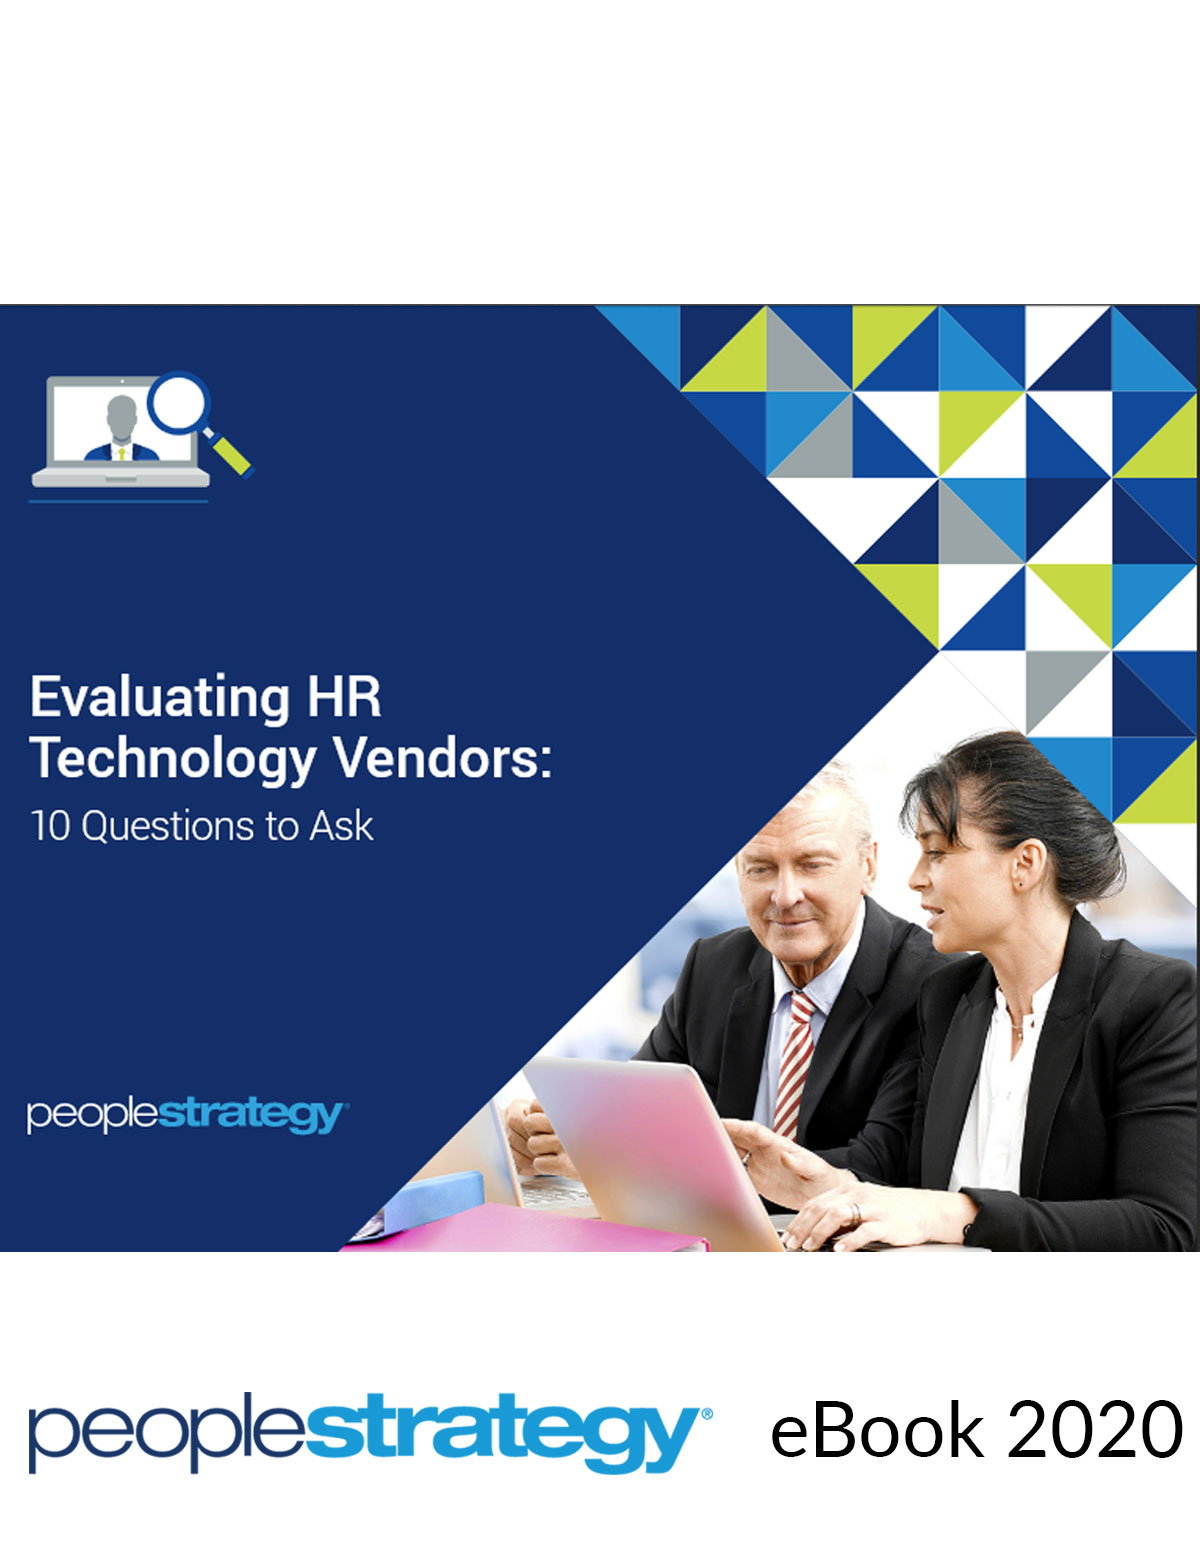 Evaluating HR Technology Vendors: 10 Questions to Ask